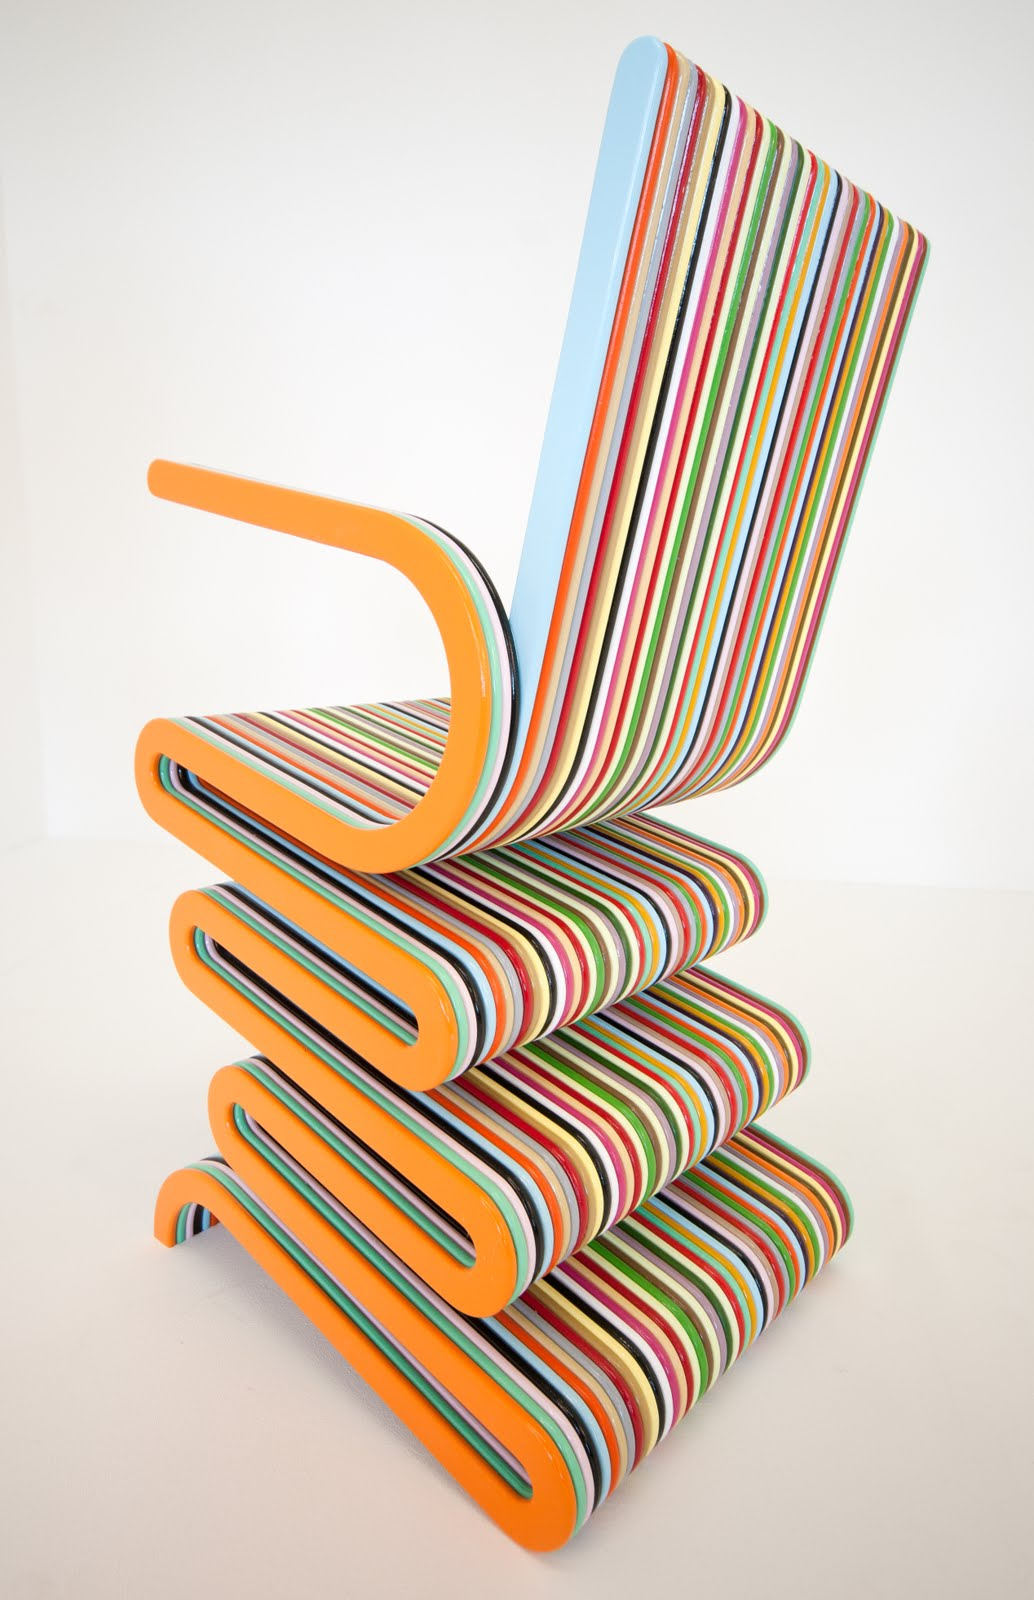 ... Design and Futuristic Furniture: armchairs, chairs, bar chairs and